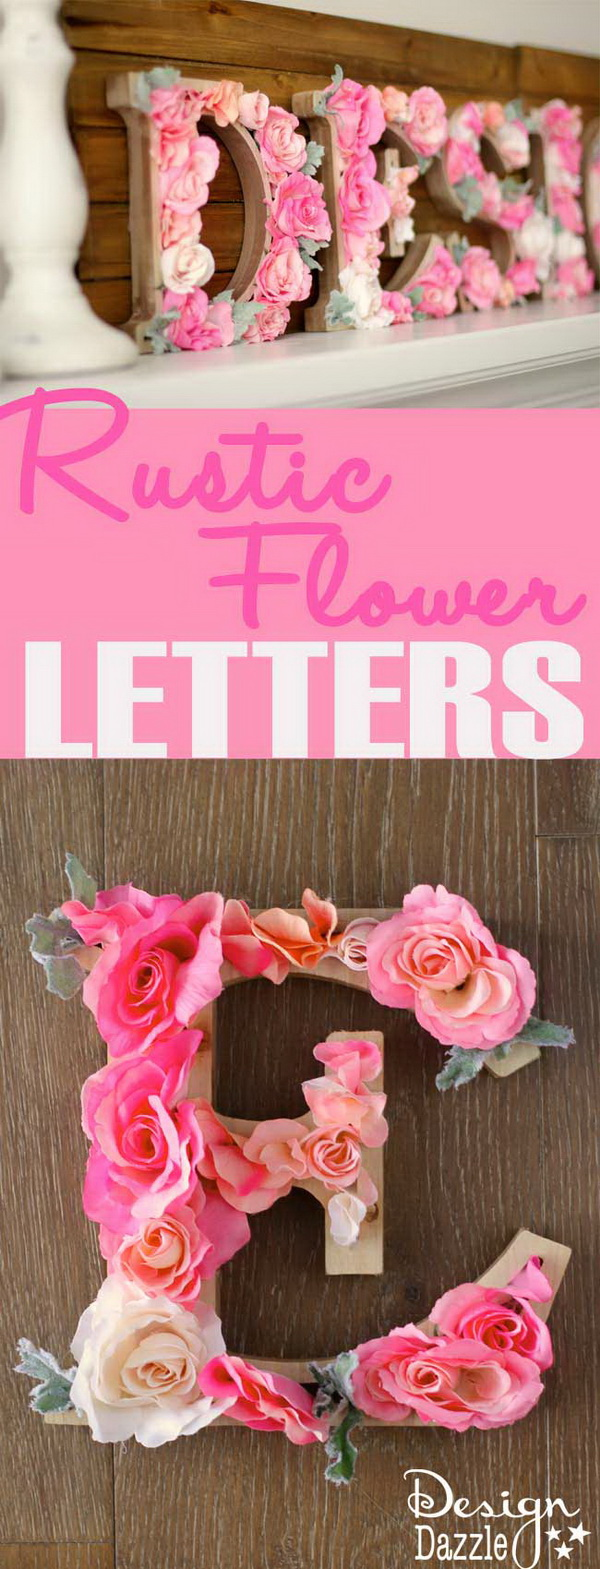 DIY Rustic Letters With Flowers 20 Best